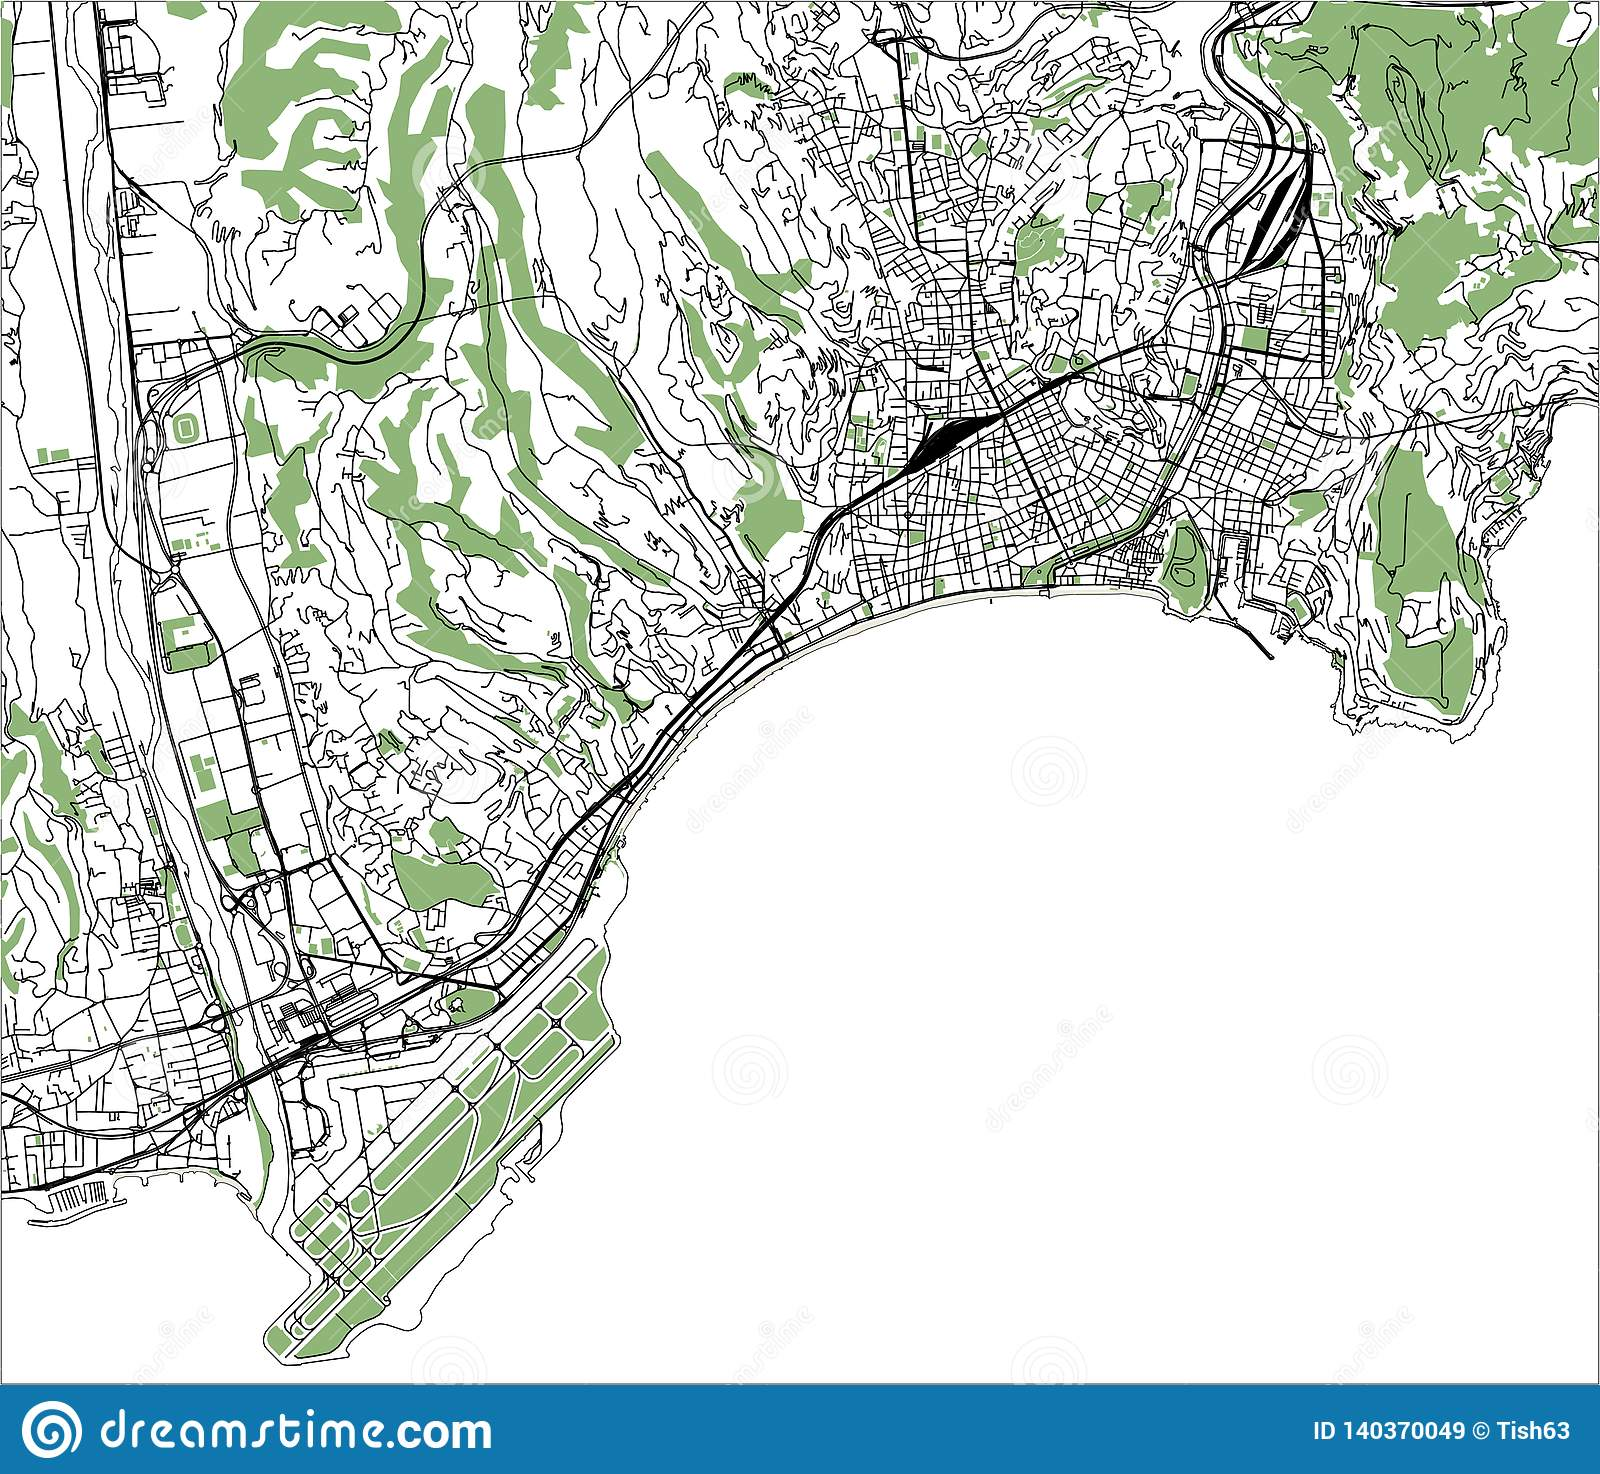 Map Of France French Riviera.Map Of The City Of Nice France Stock Illustration Illustration Of